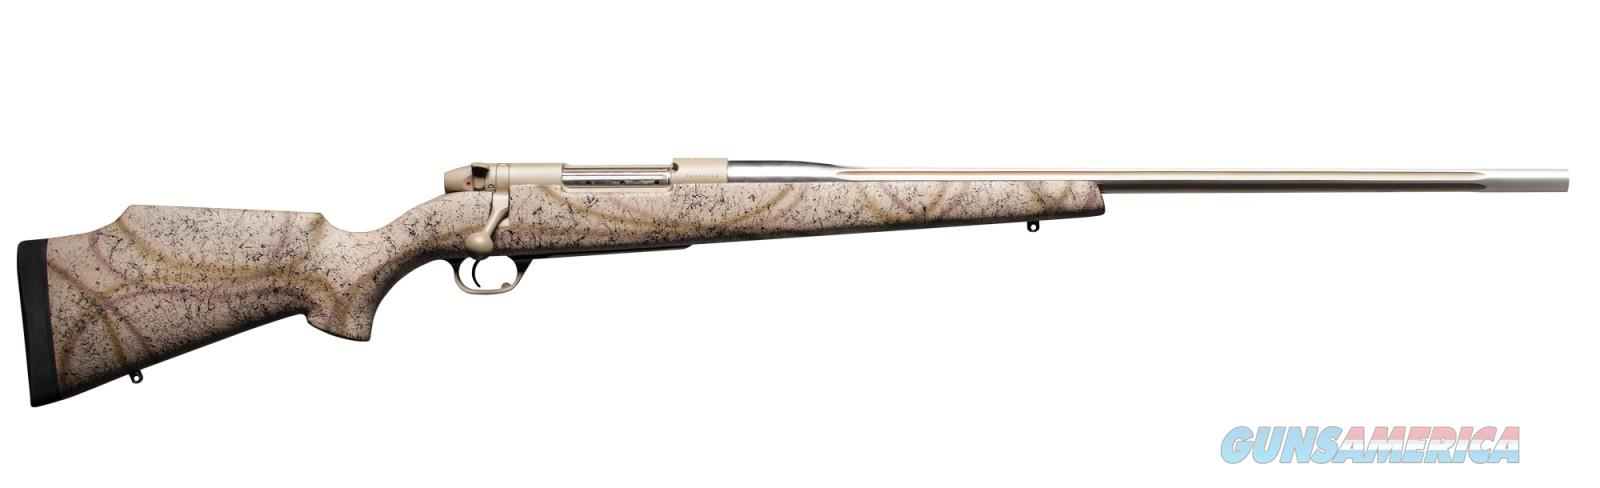 "Weatherby Mark V Terramark 6.5 Creedmoor 24"" MATS65CMR4O   Guns > Rifles > Weatherby Rifles > Sporting"